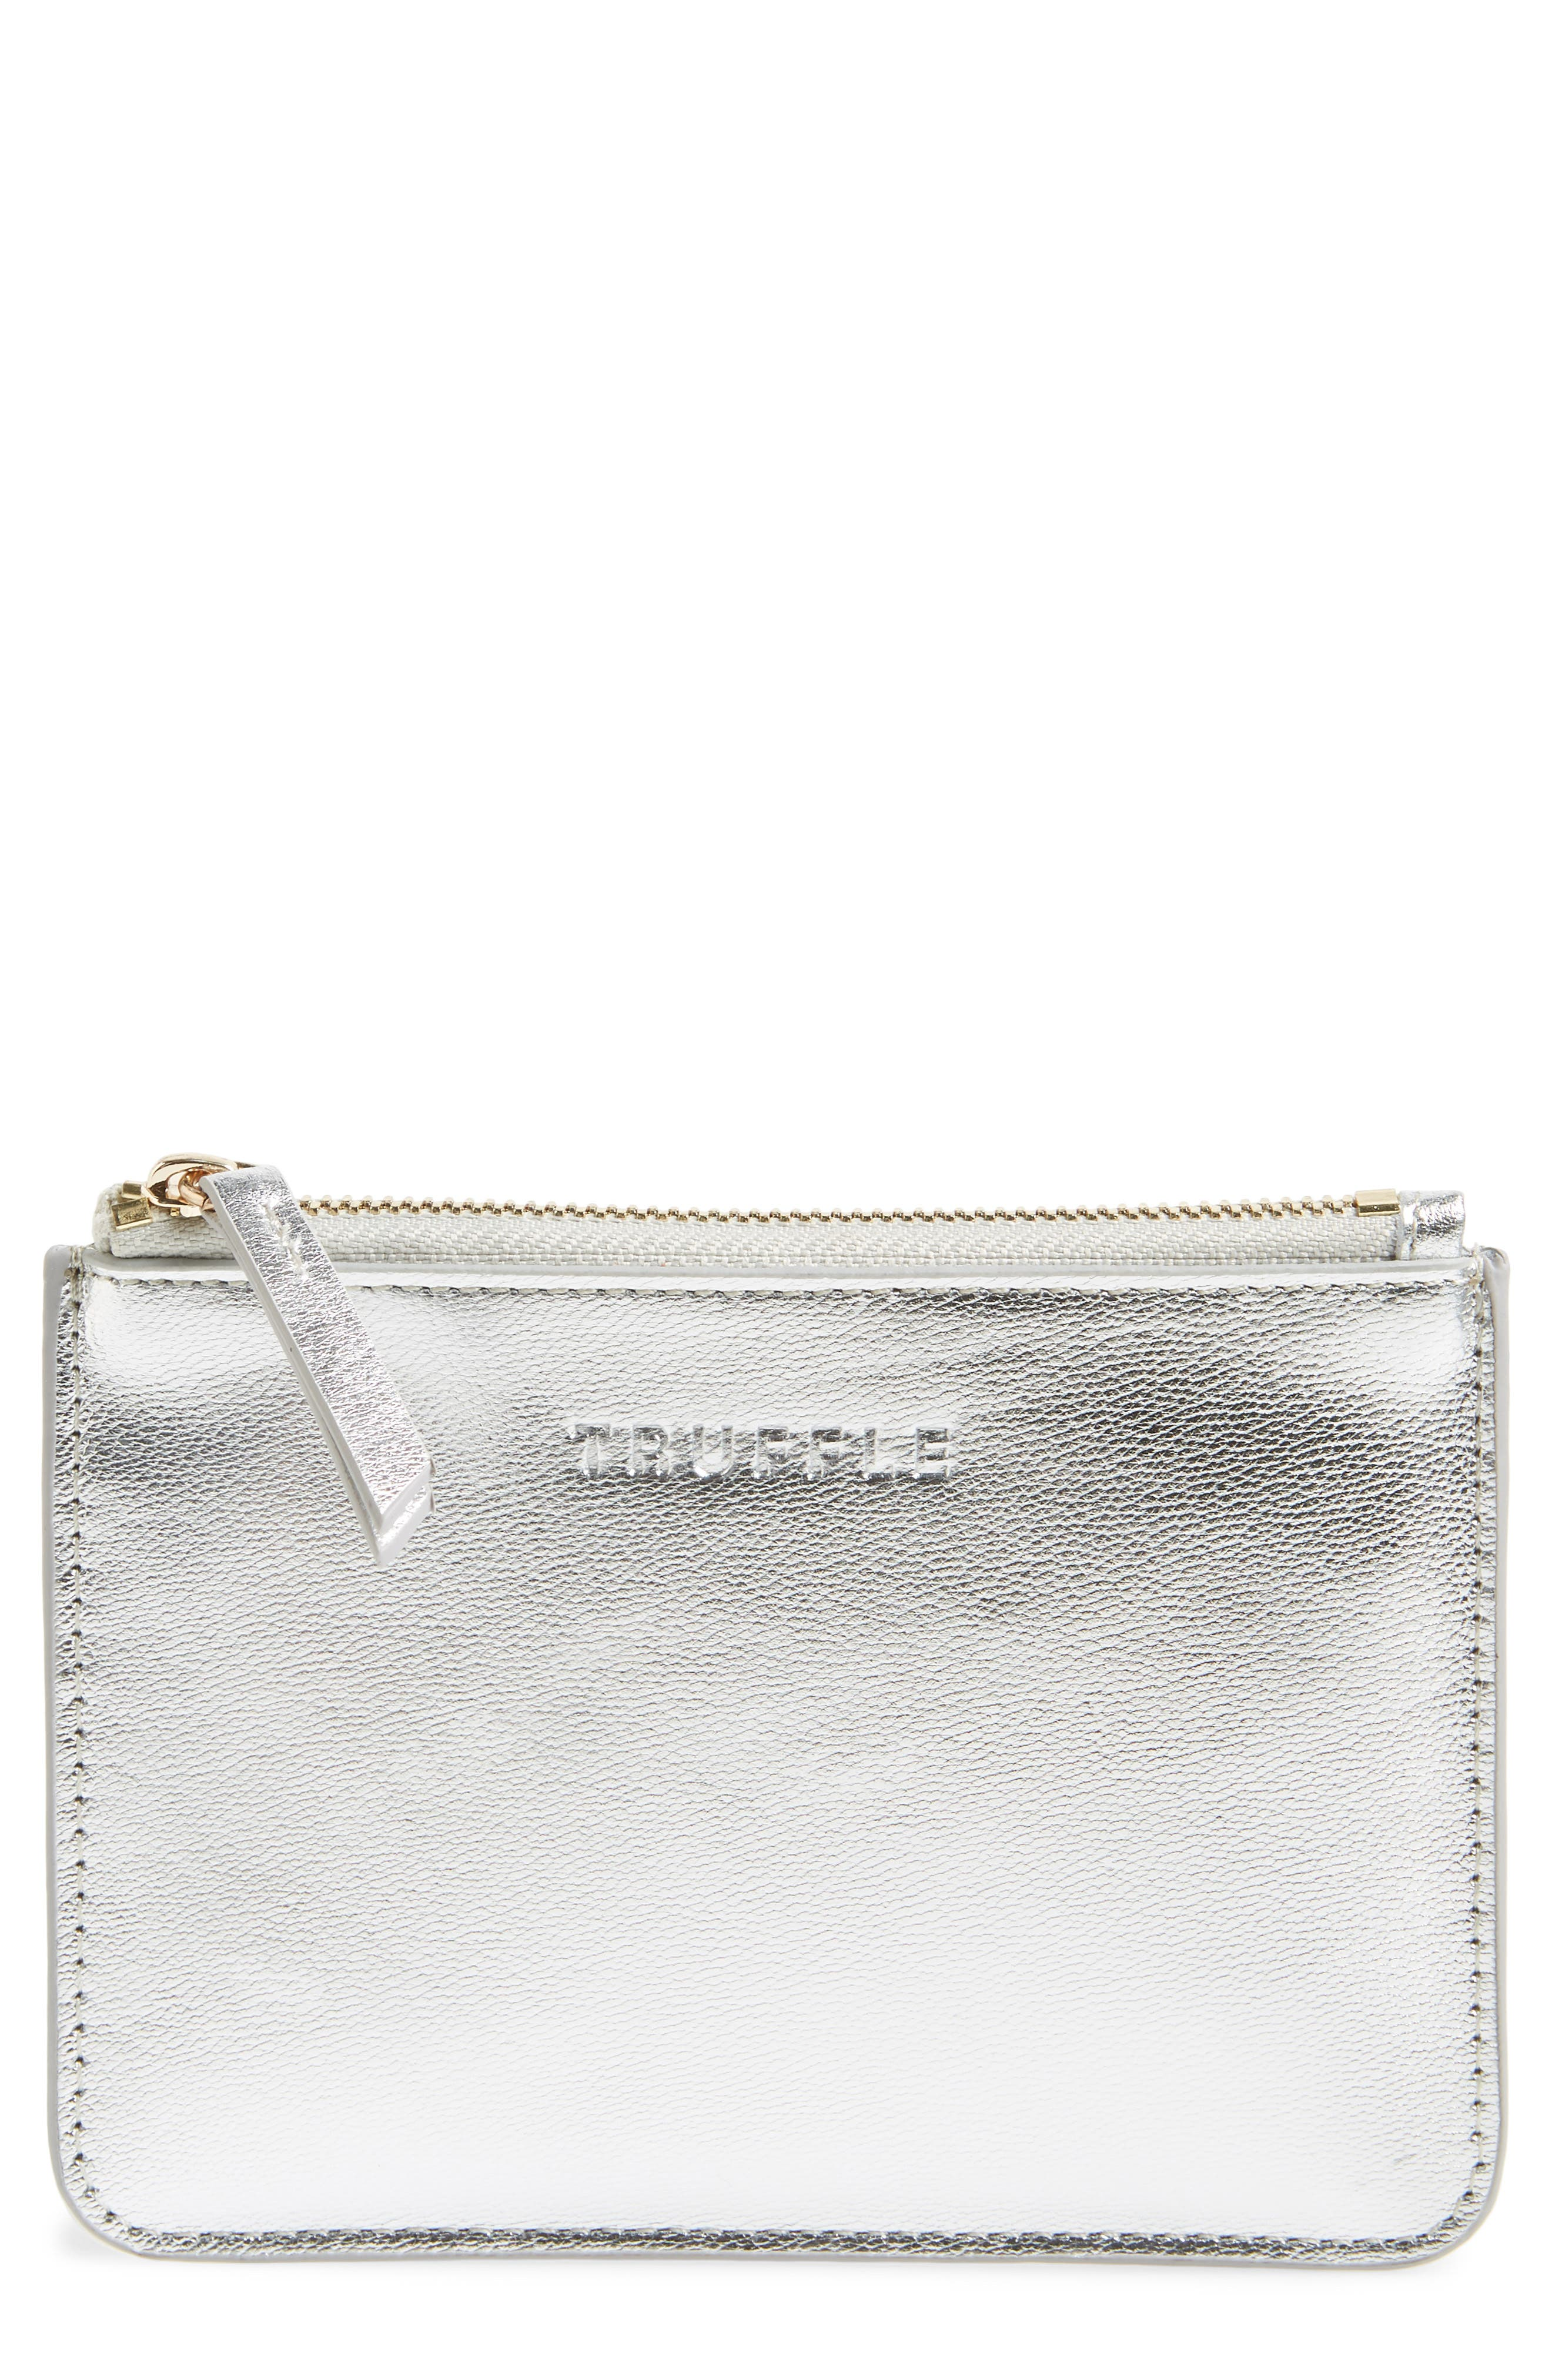 Privacy Leather Coin Pouch,                         Main,                         color, SILVER